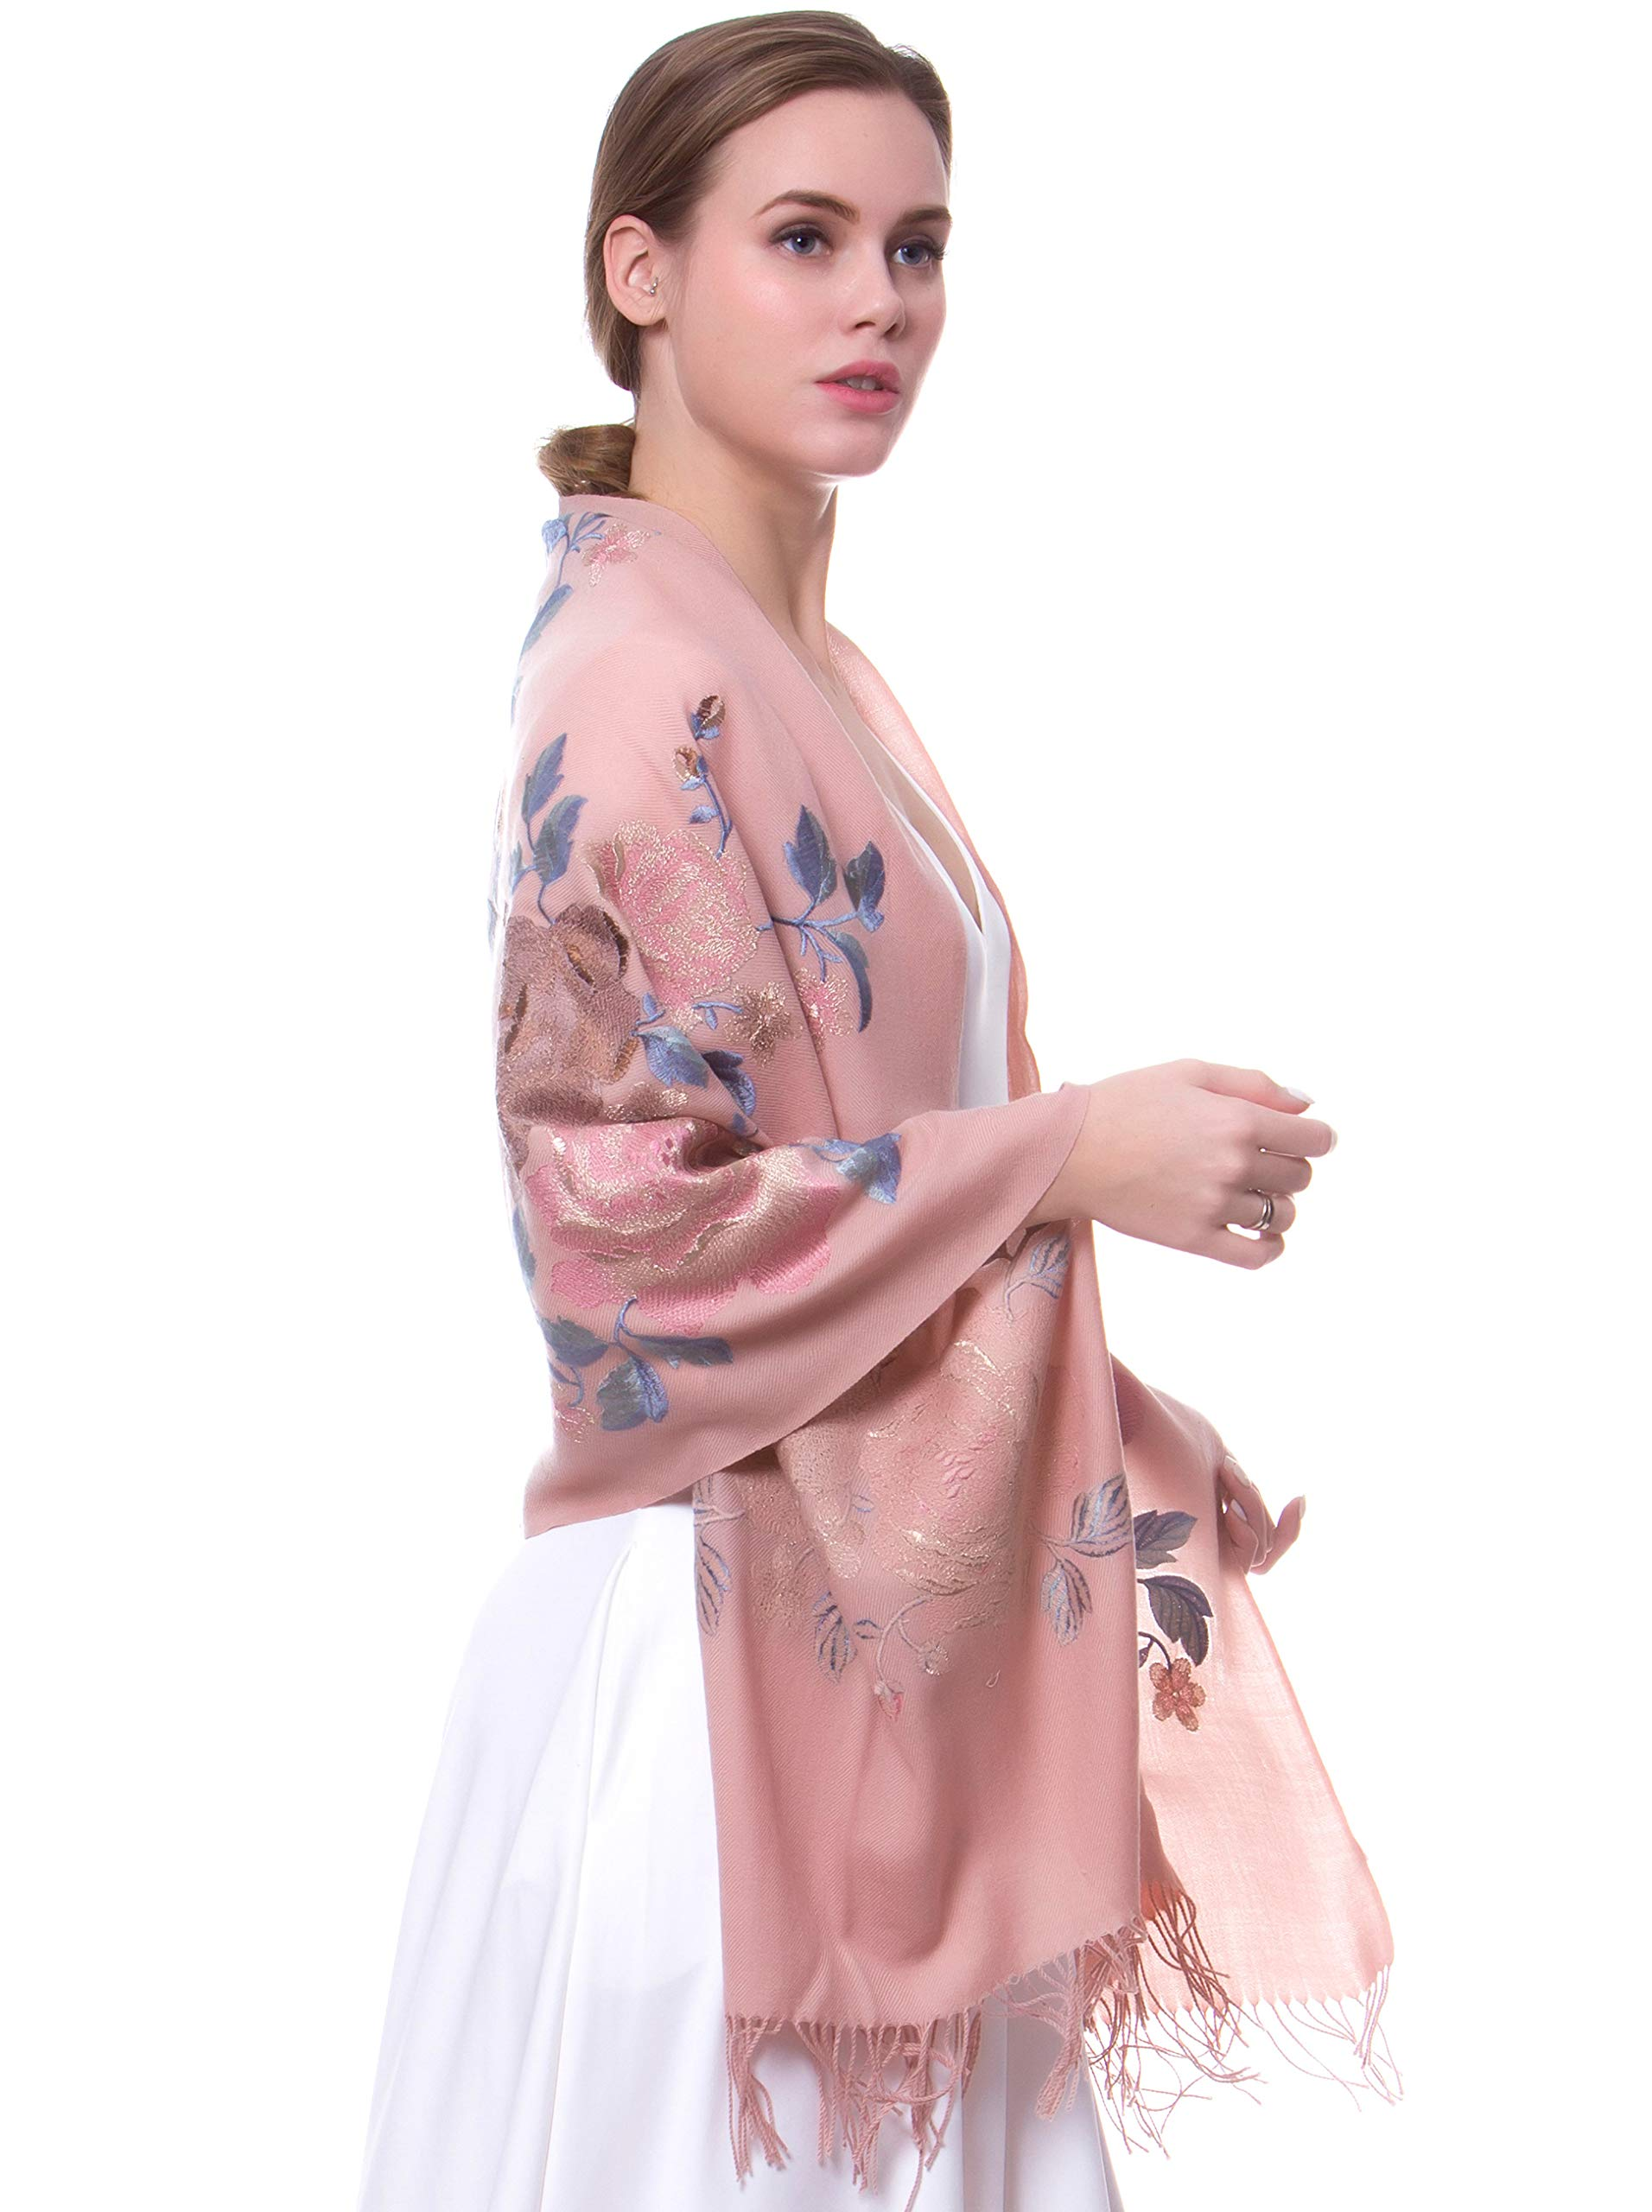 MORCOE Women's Top-class 100% Wool Delicate Embroidered Soft Long Floral Scarf Warm Wrap Party Wedding Shawl Gift … (Khaki)